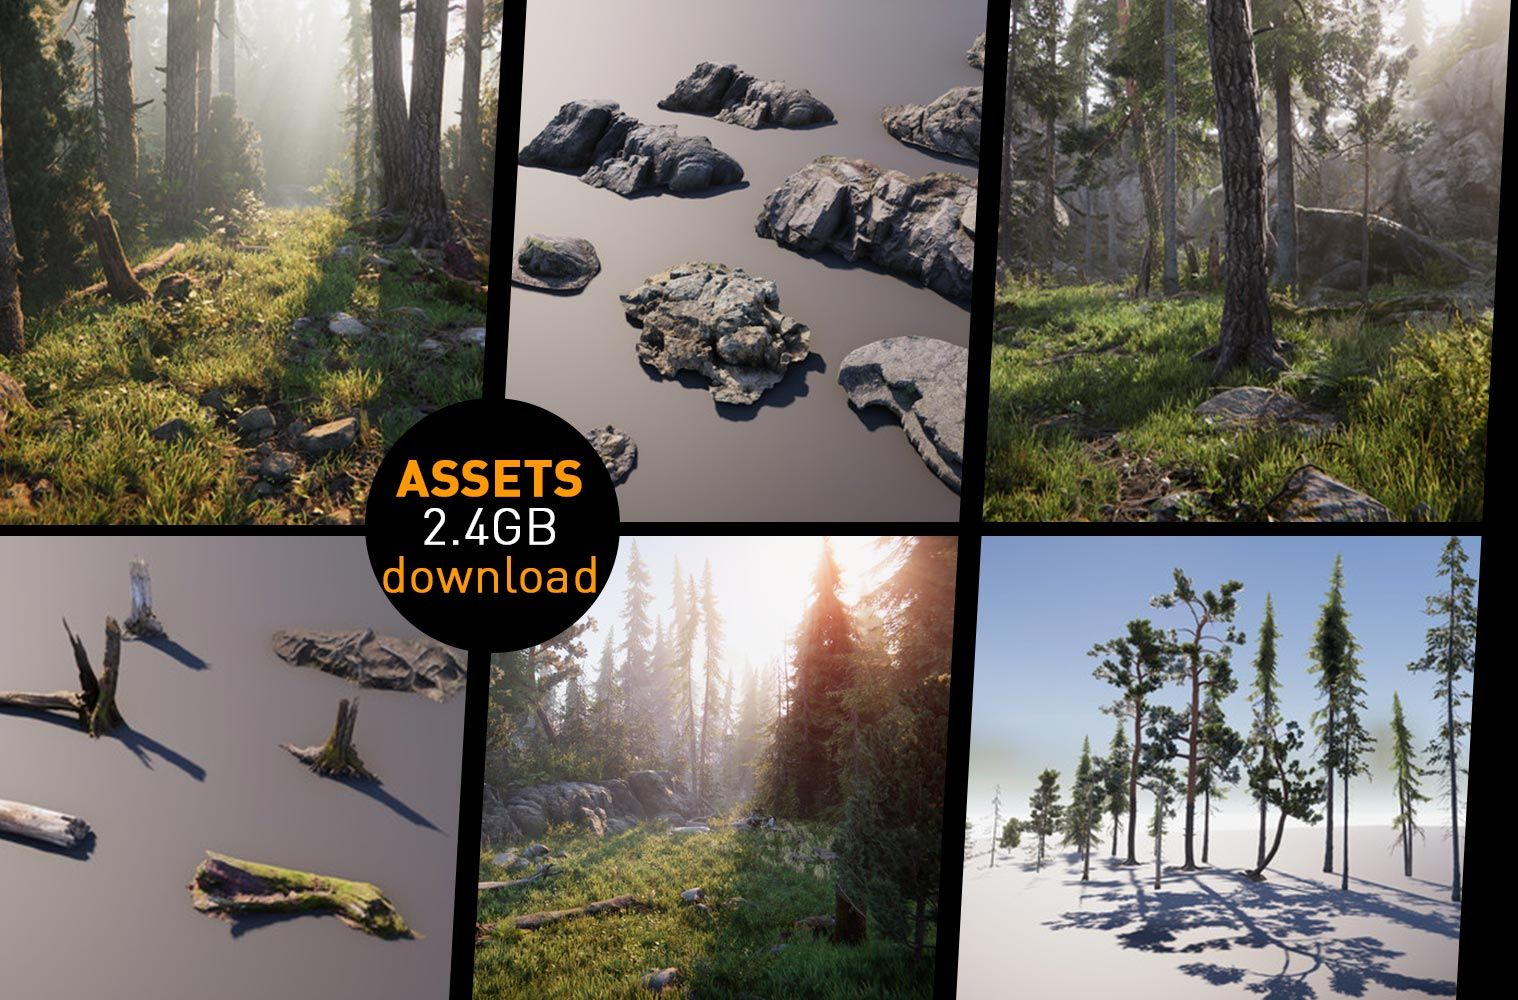 Download free assets from Unity   Unity   Дерево